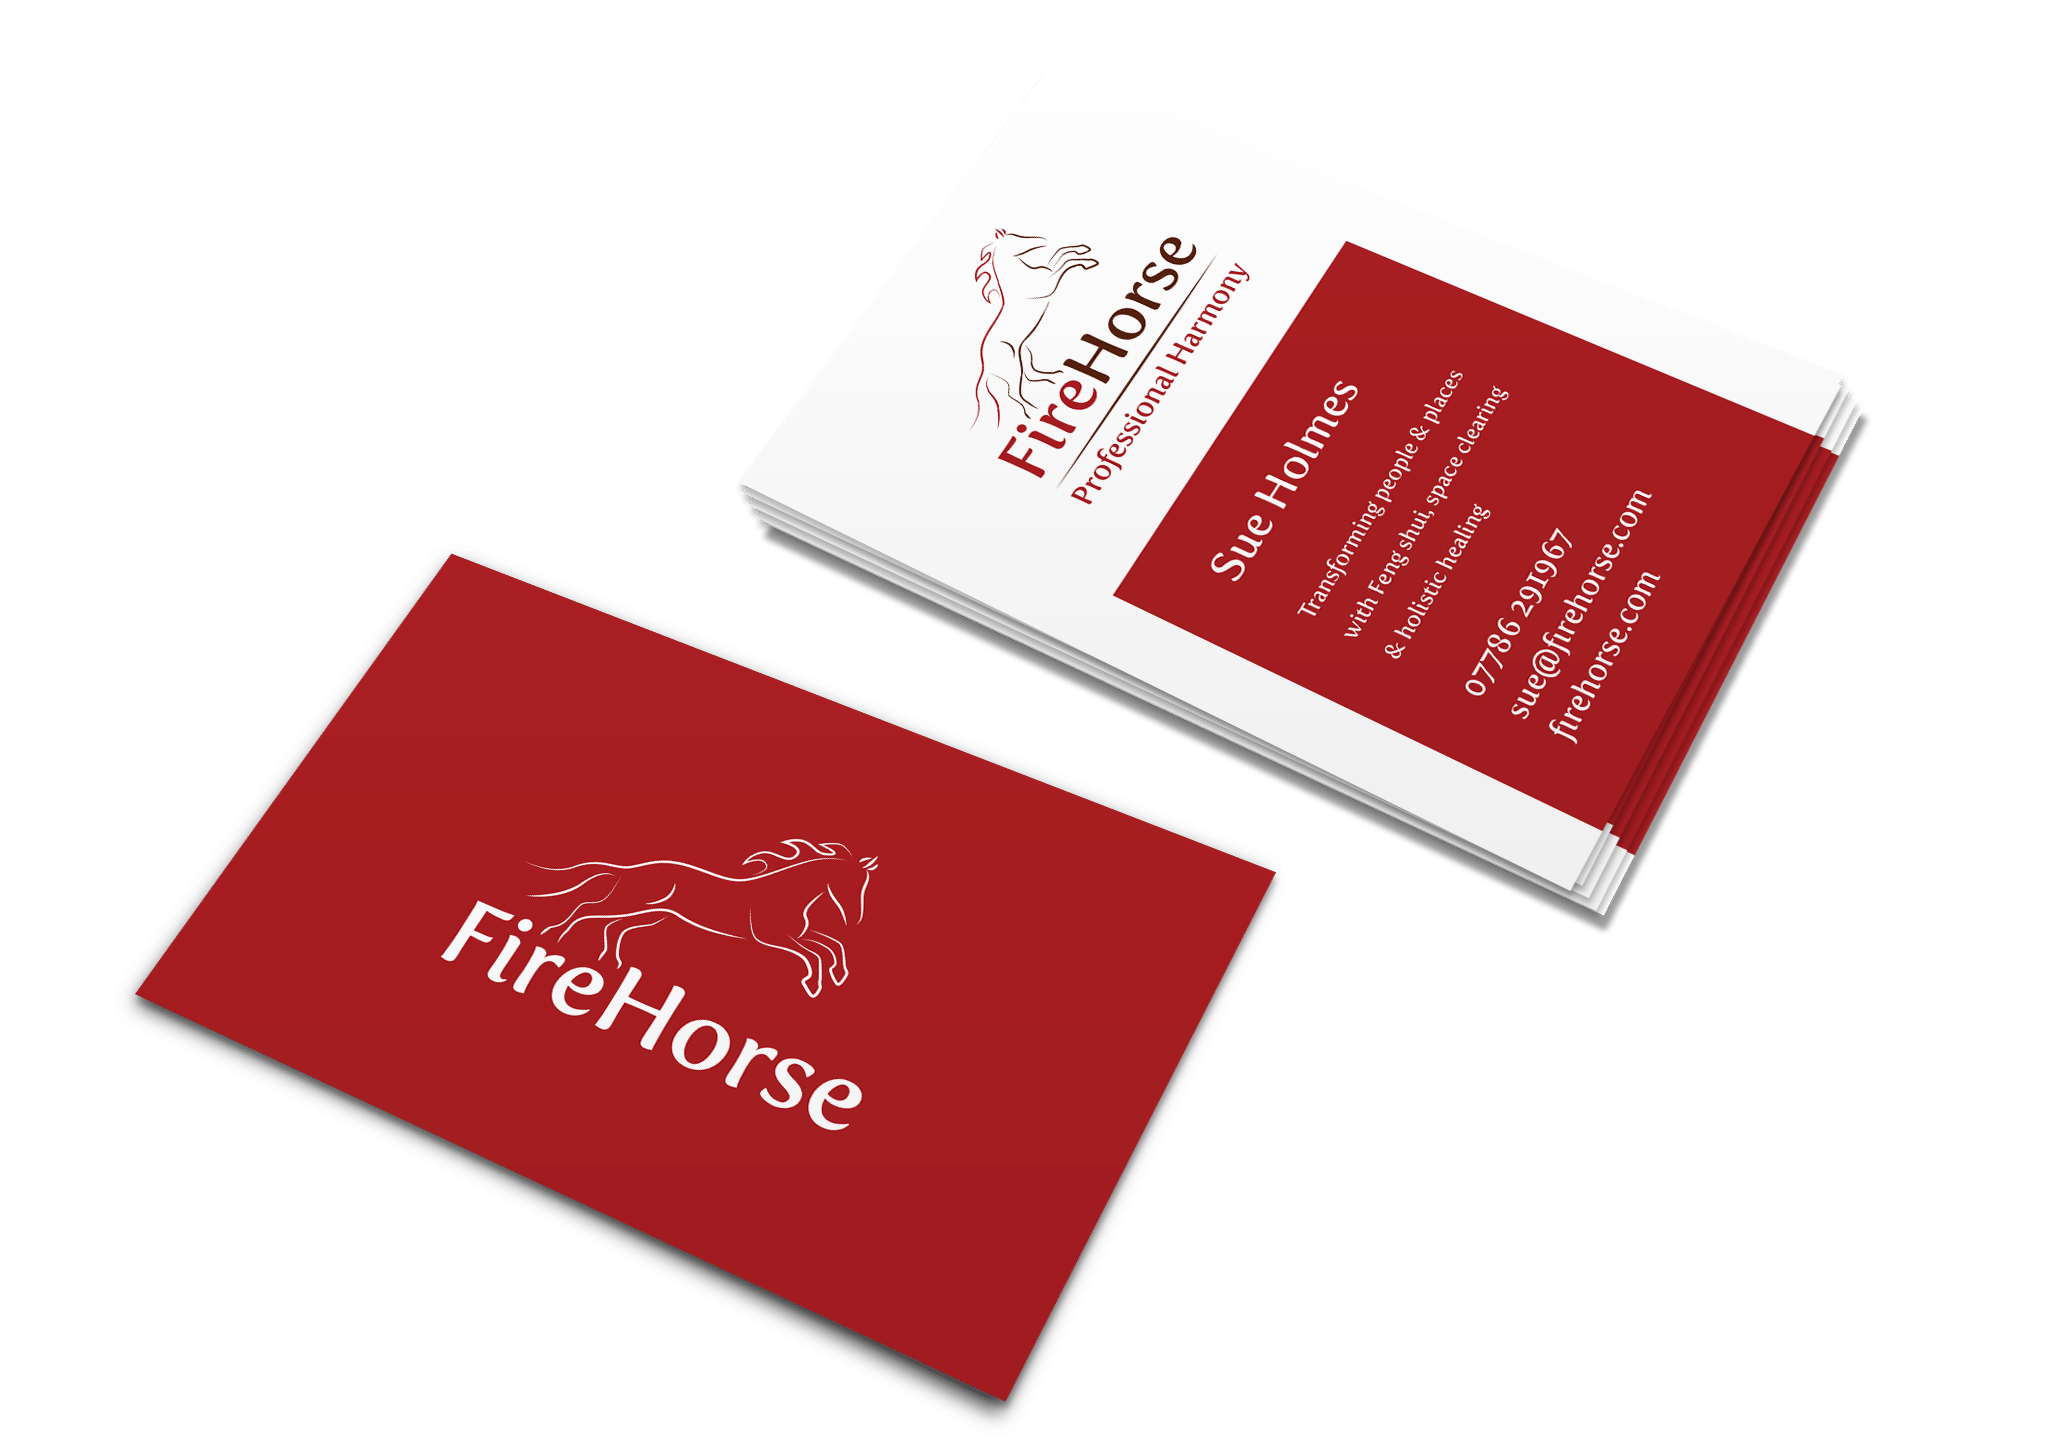 F8 - Business Card Design & Print Services - Worcester